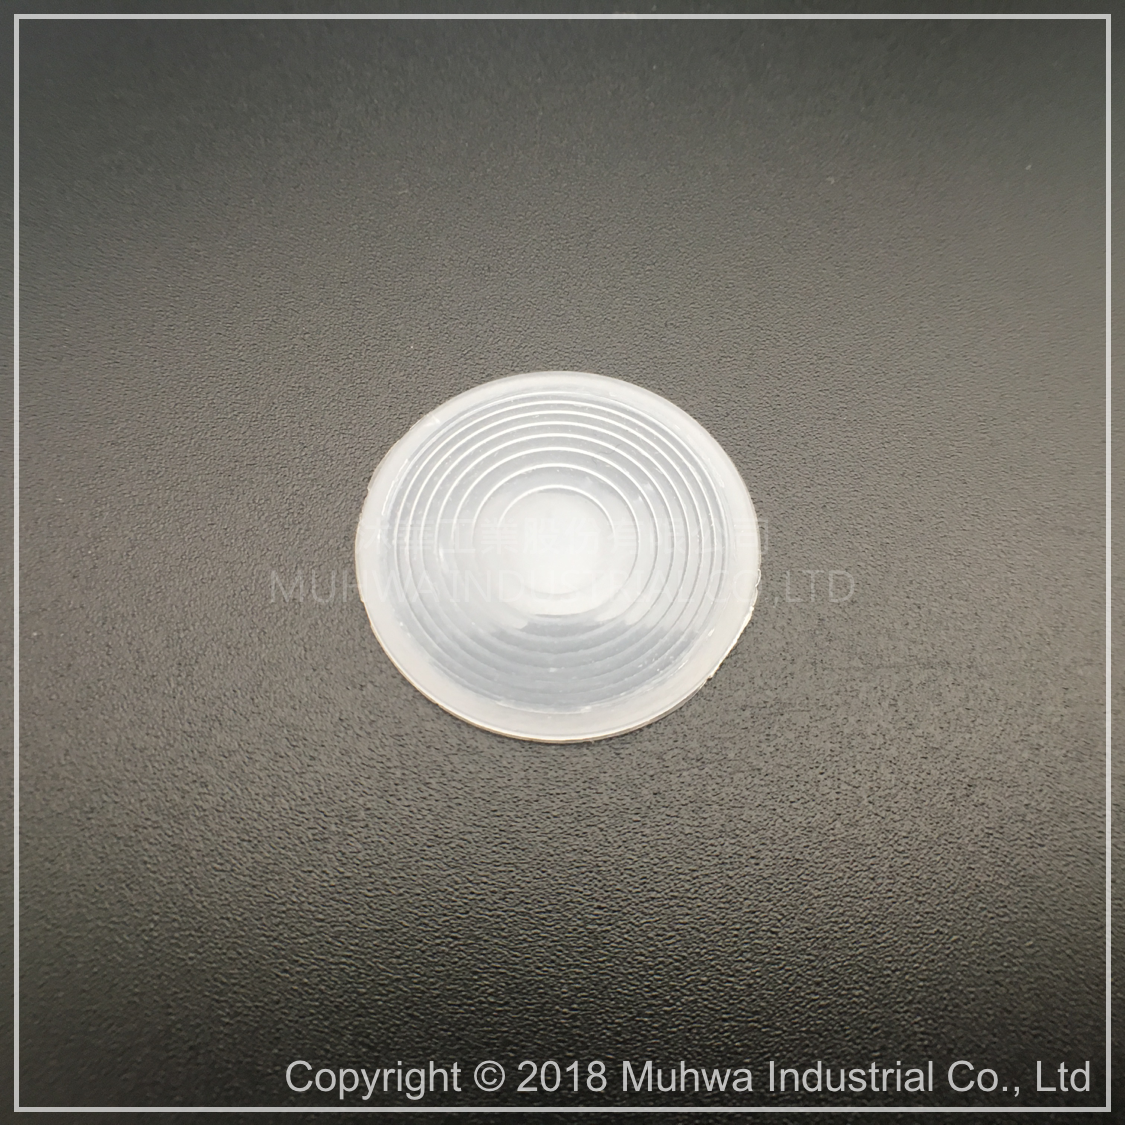 High quality Best Round Fresnel Lens Quotes,China Best Round Fresnel Lens Factory,Best Round Fresnel Lens Purchasing